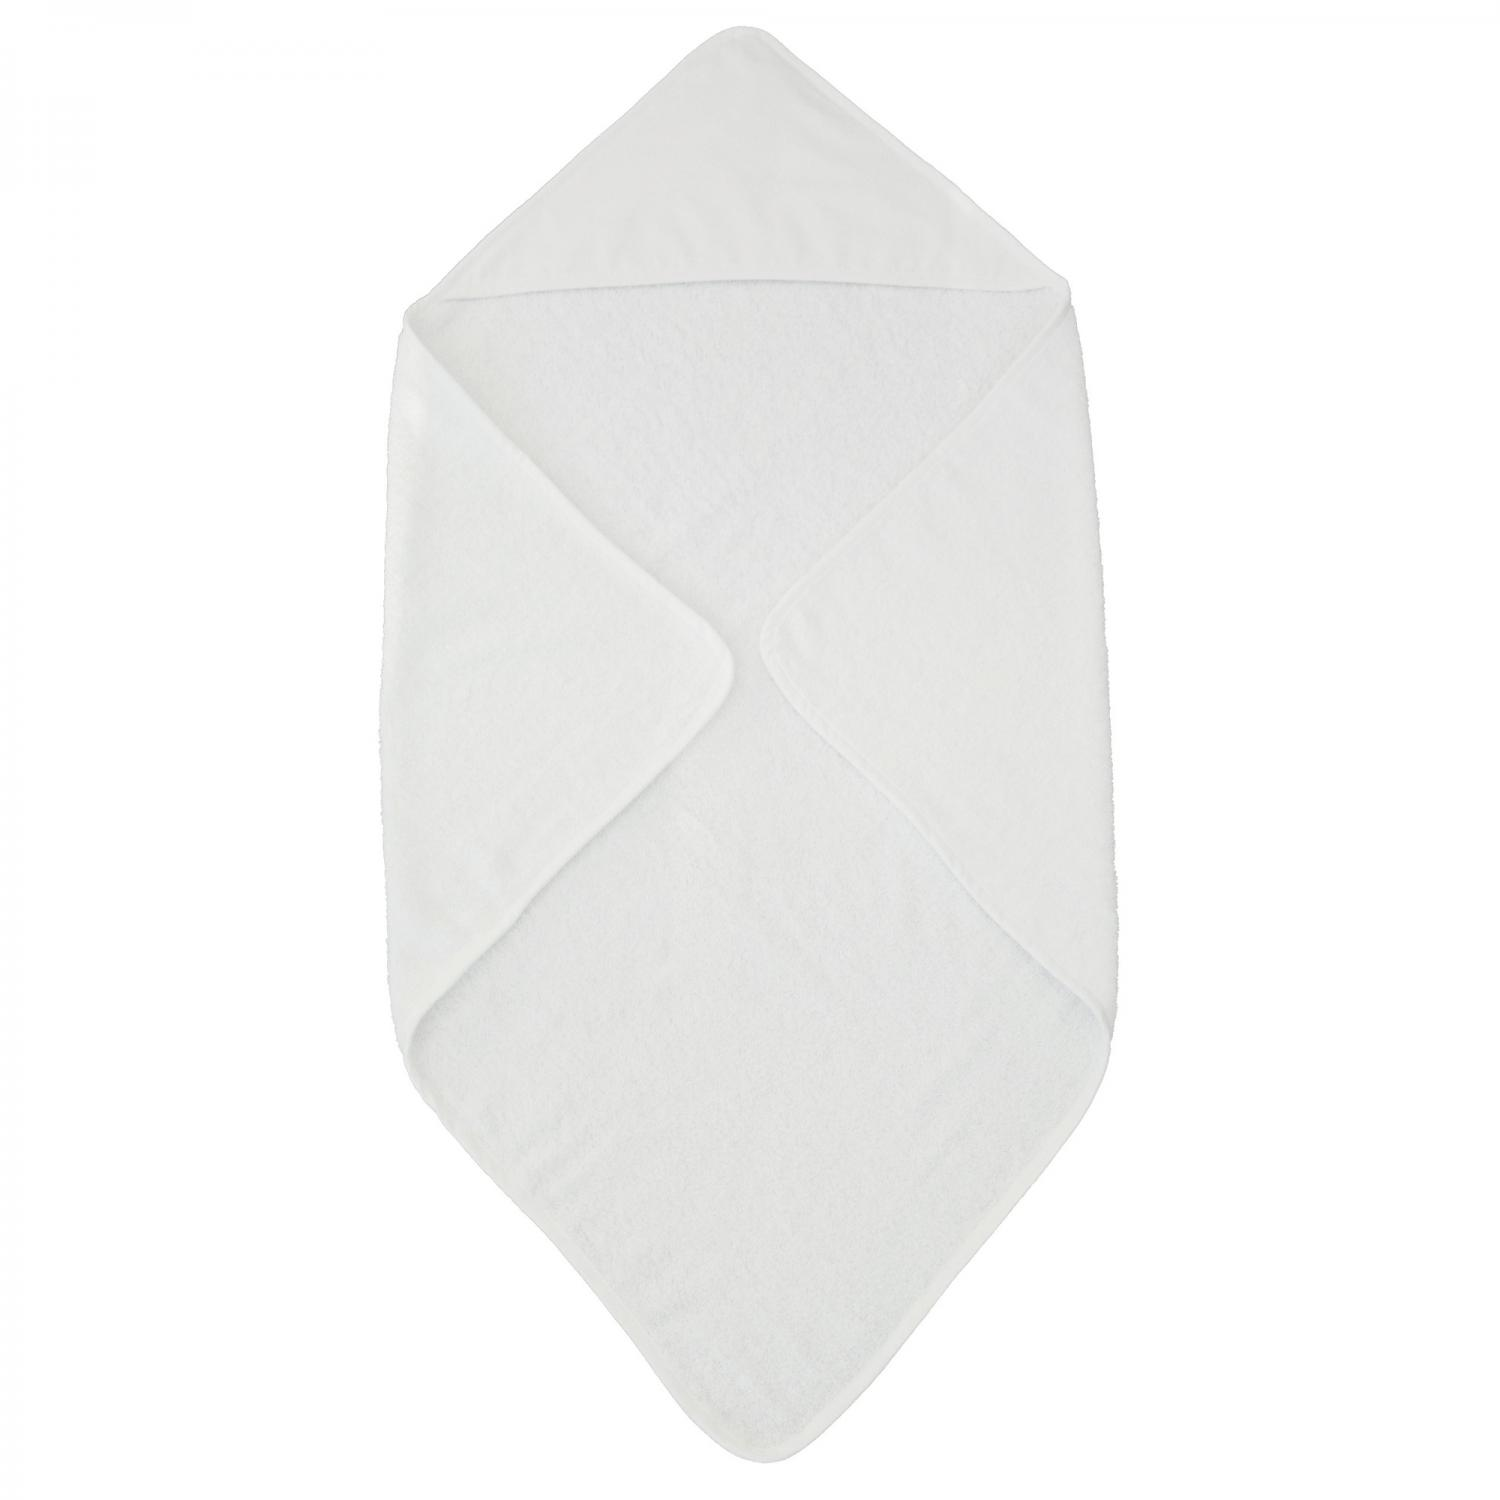 Hooded towel classic white GOTS